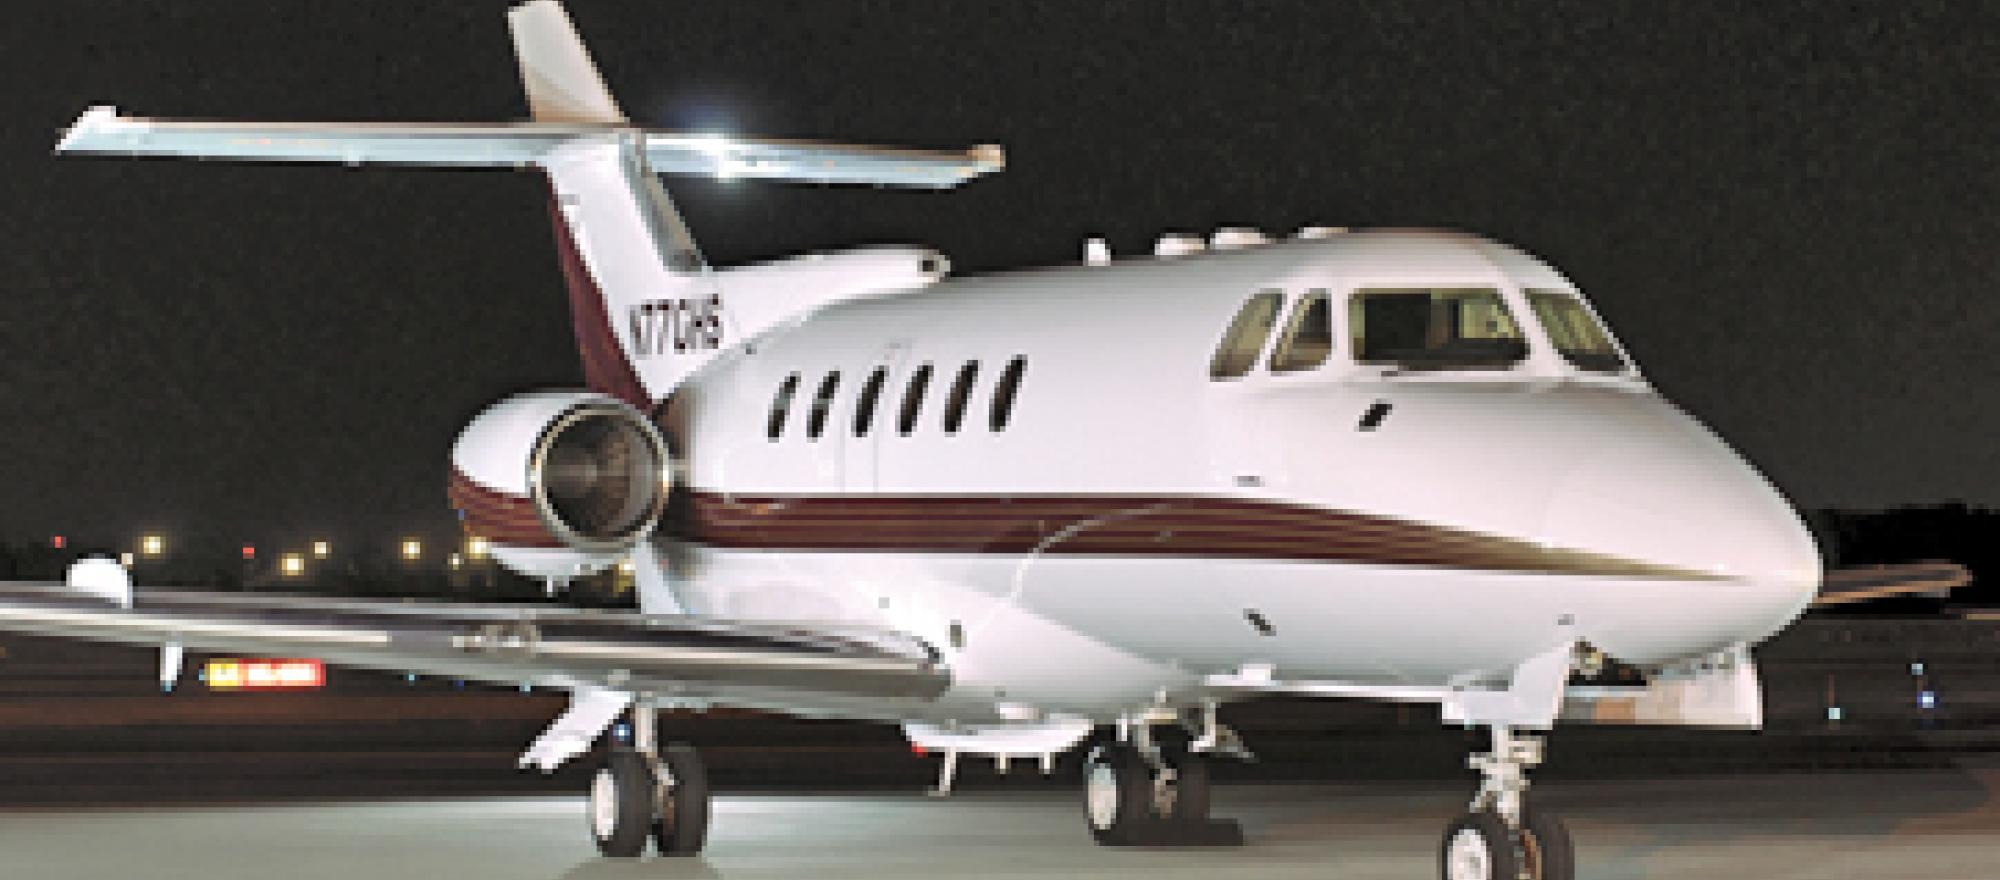 Three reasons explain why the Hawker 700s produced between 1977 and 1984 rema